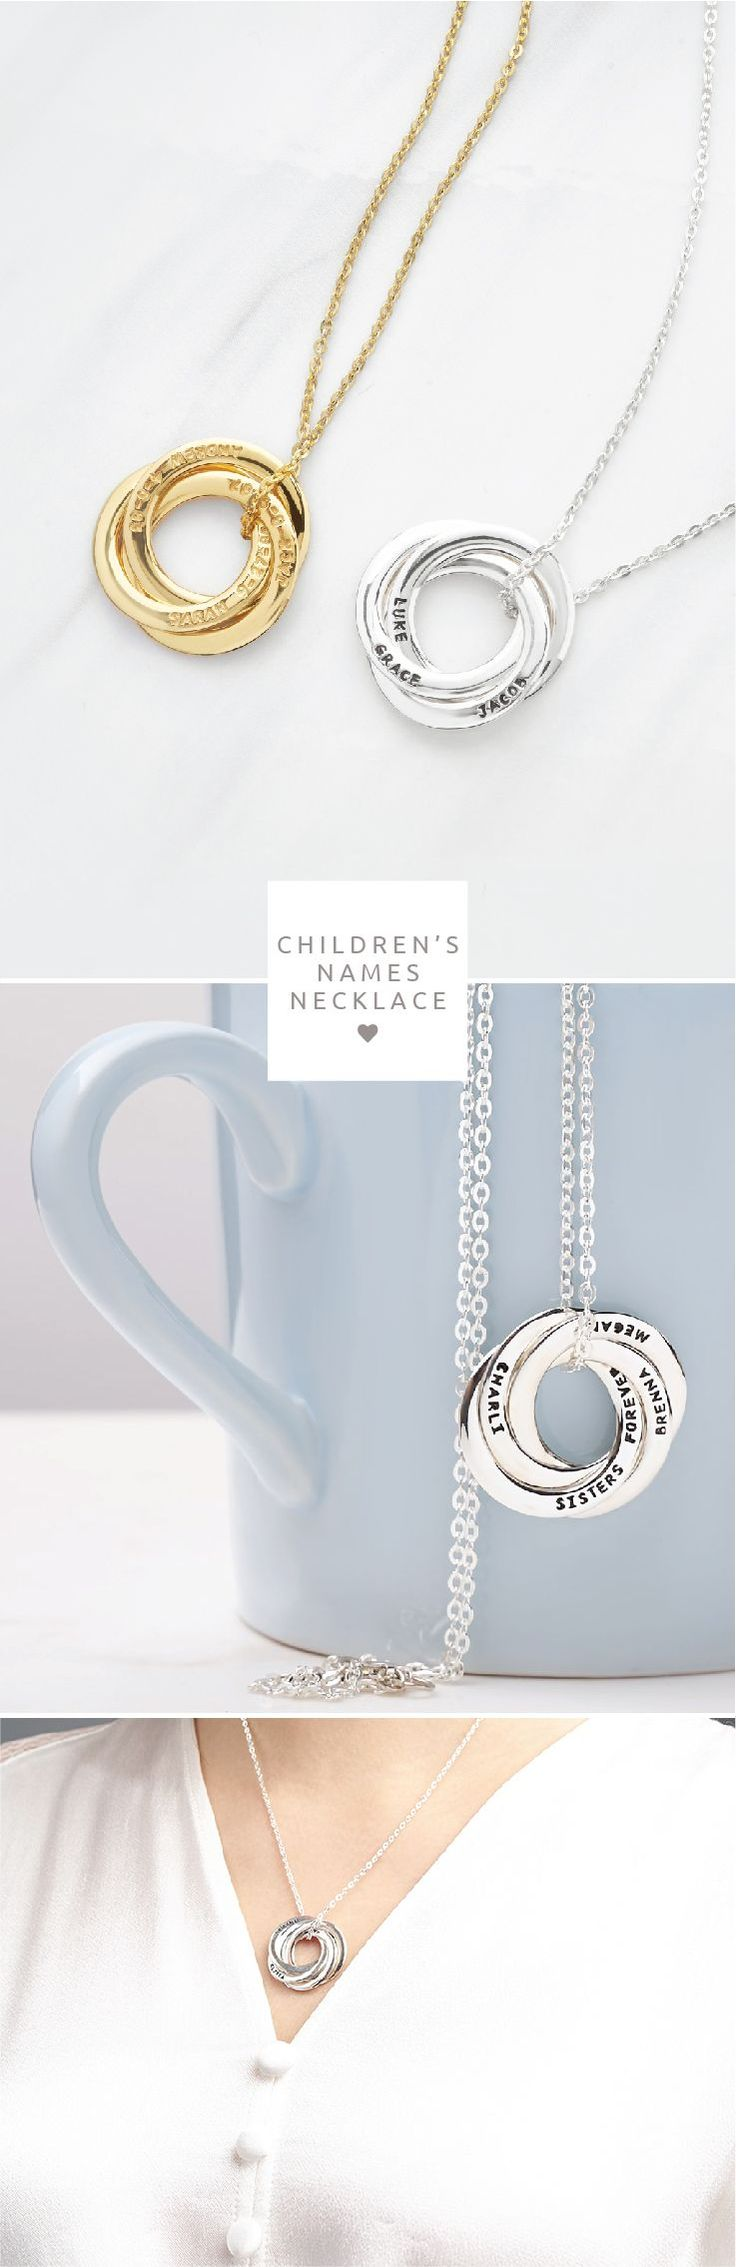 Children's names necklace • Gift for mom • Mommy necklace • Circle of love necklace • Mother and child necklace • Mommy jewelry  • Mother's Day Gift Idea